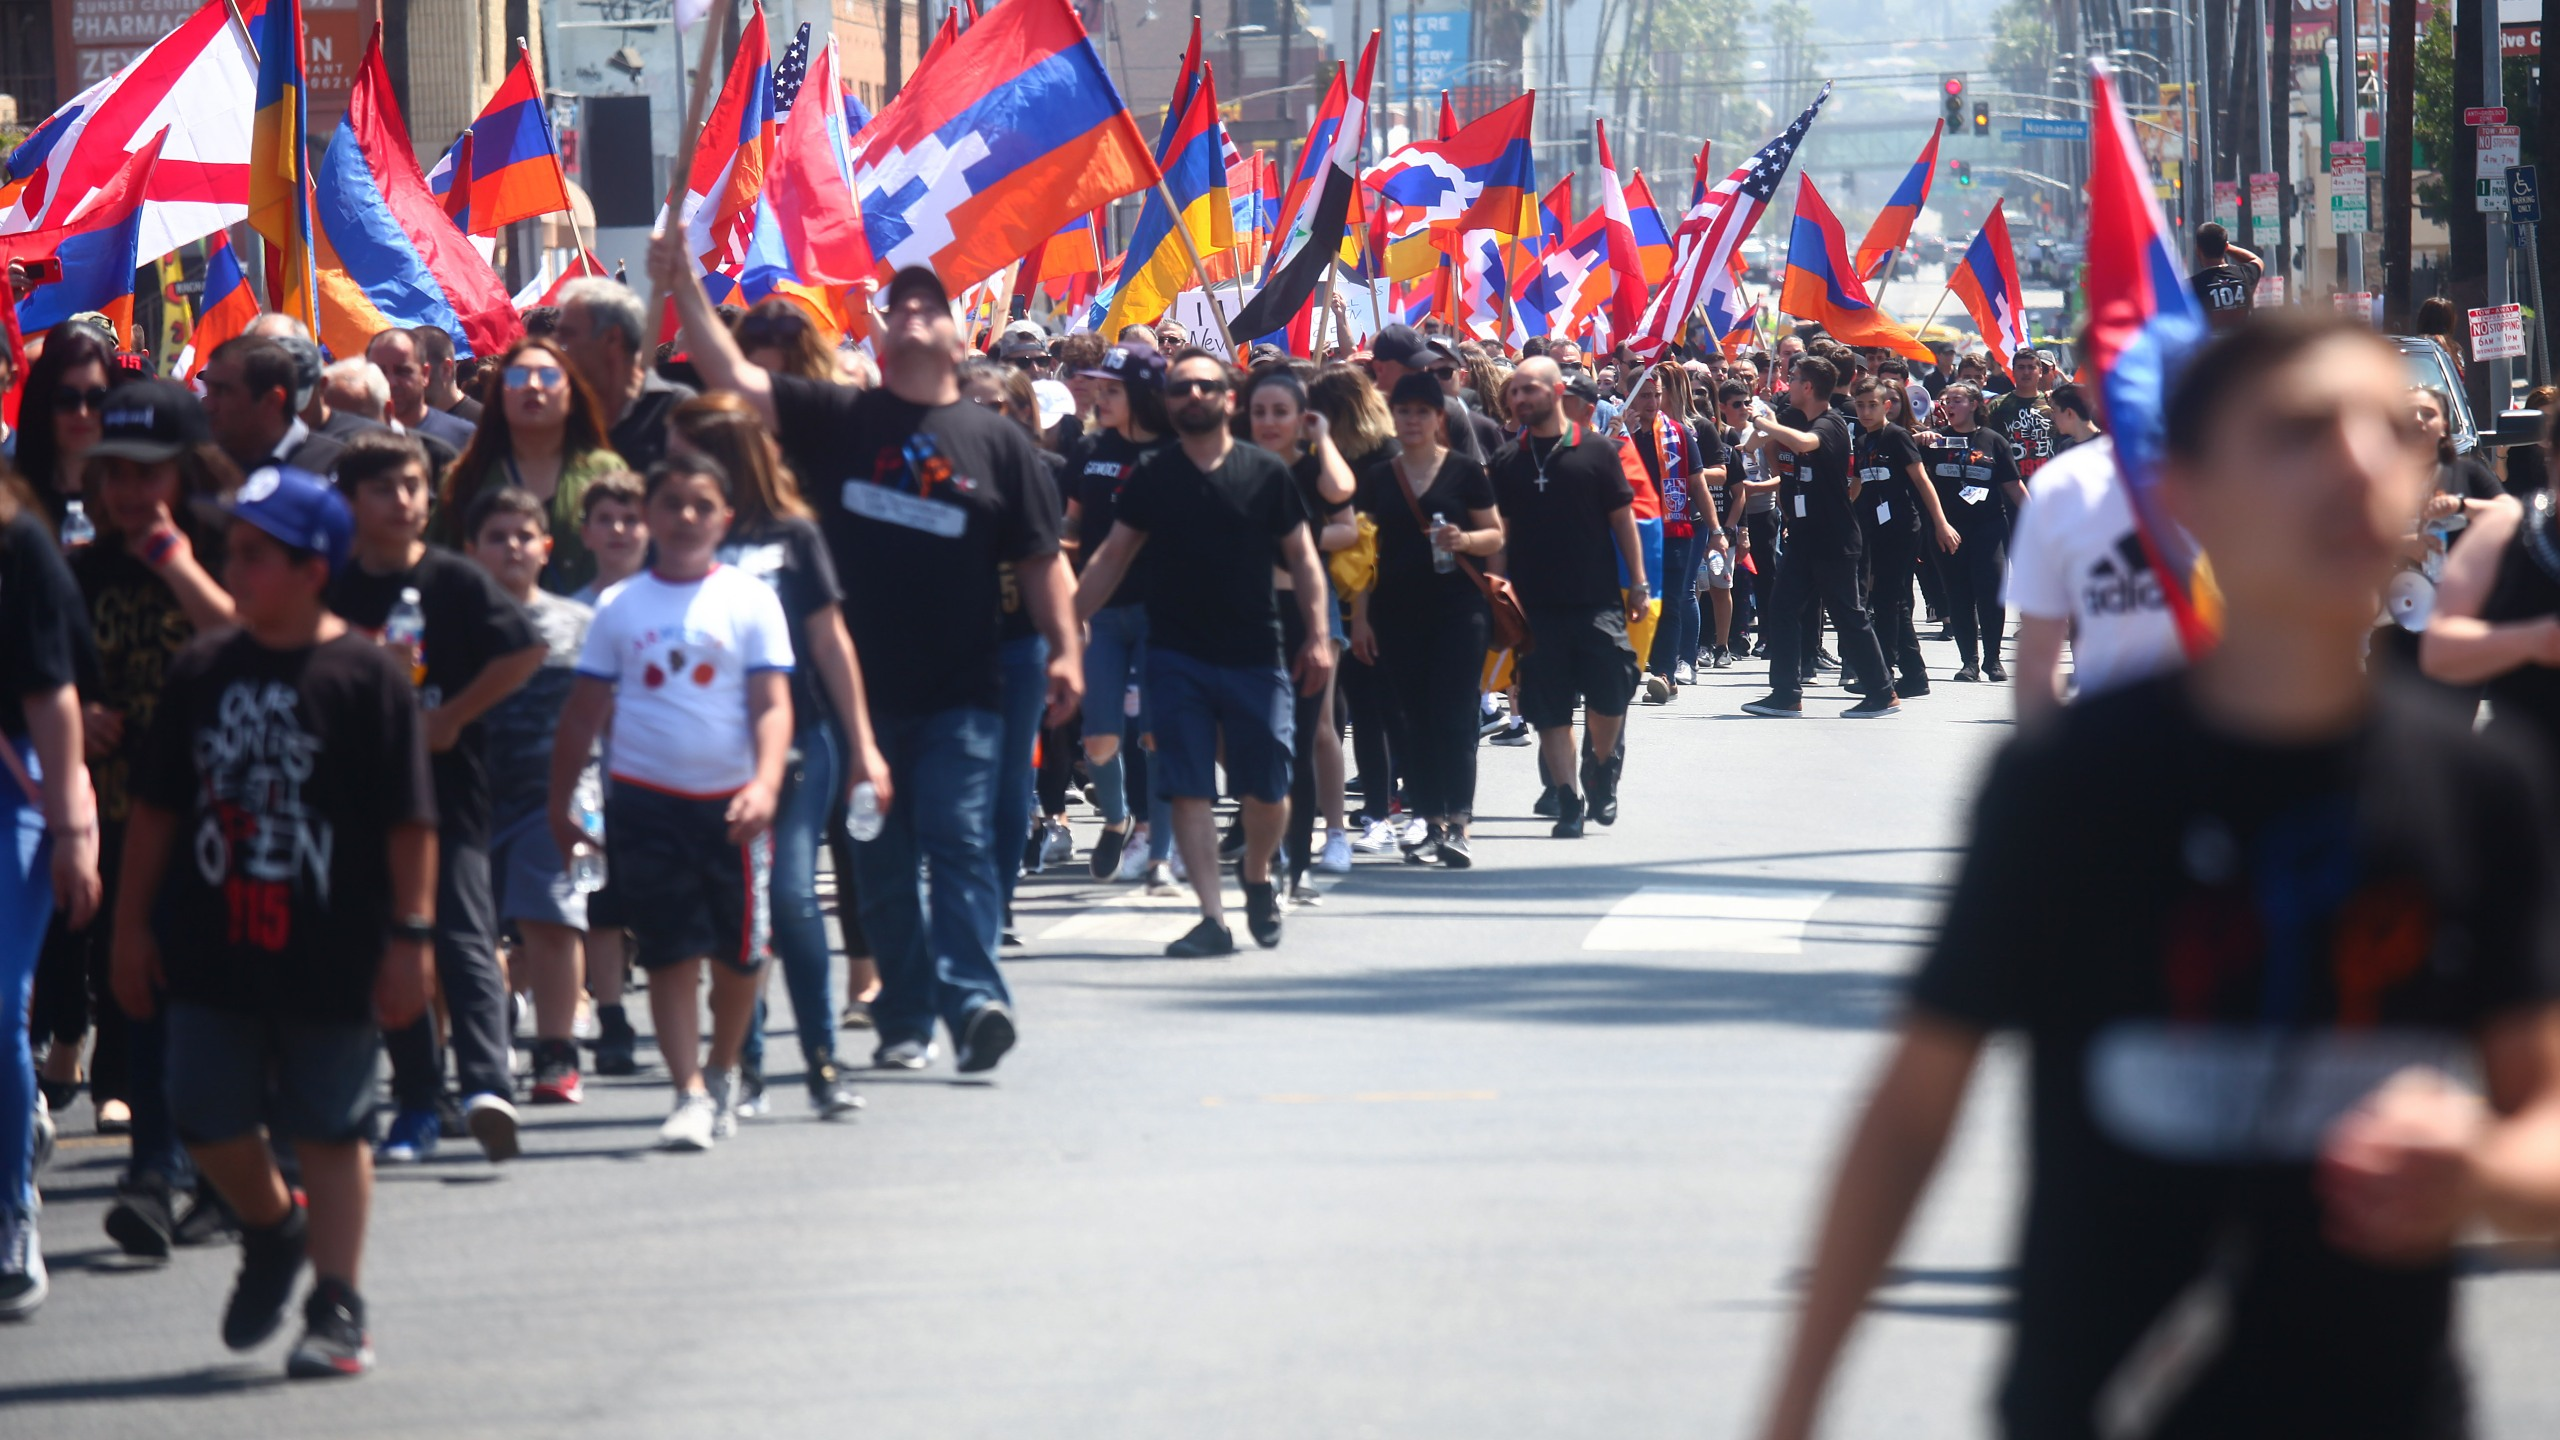 Armenians, Armenian descendants and supporters walk during a march and rally commemorating the 104th anniversary of the Armenian genocide on April 24, 2019, in Hollywood, California. Greater Los Angeles is home to one the world's largest Armenian communities outside of Armenia. (Credit: Mario Tama/Getty Images)